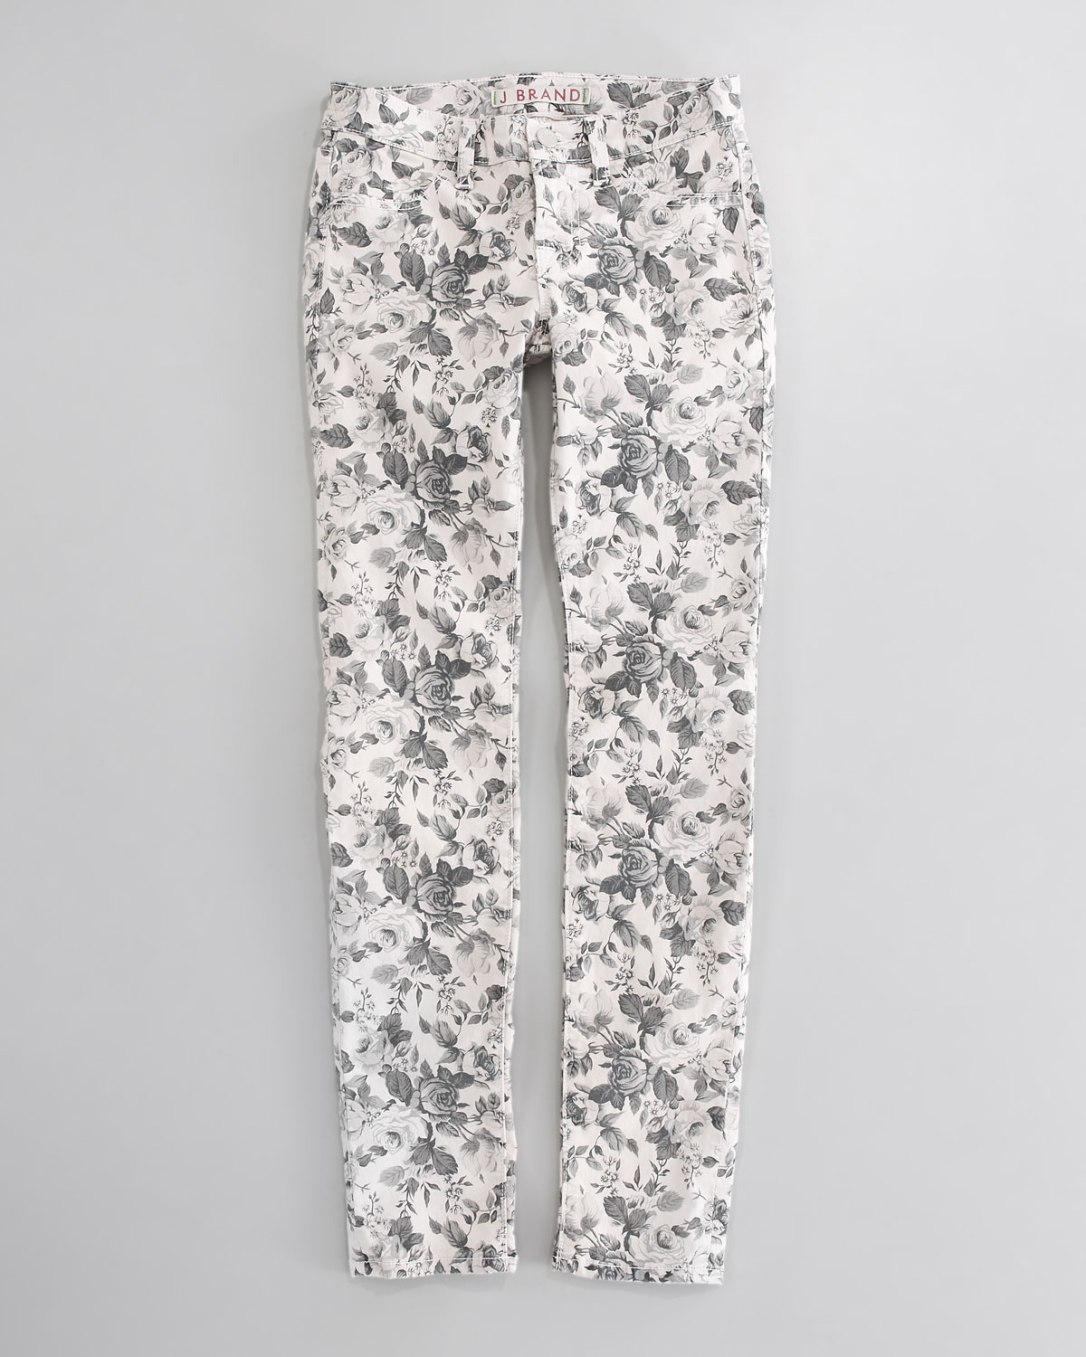 J Brand Jeans Floral Twill Skinny Jeans